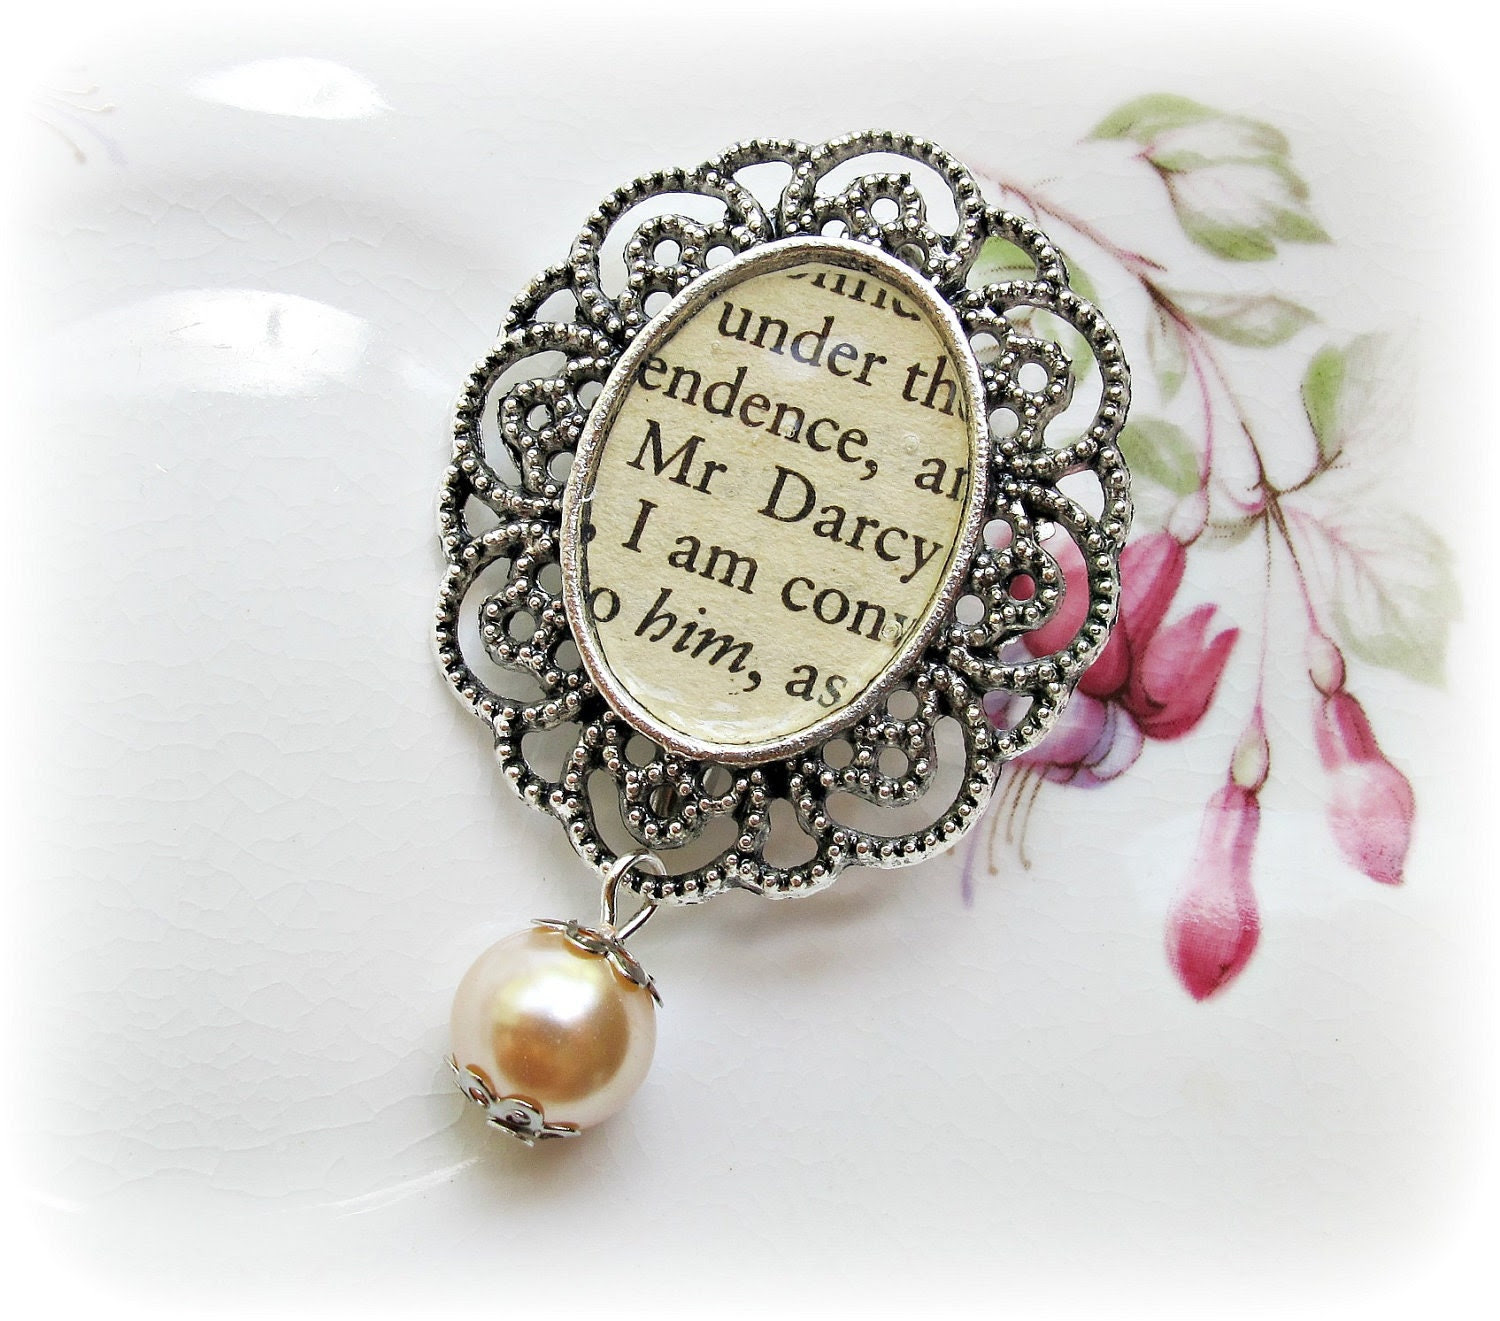 Brooch. Mr Darcy III Bridal. Jane Austen. Pride and Prejudice. Upcycled. Cameo. Bouquet Pin. Jewellery Pink Glass Pearl